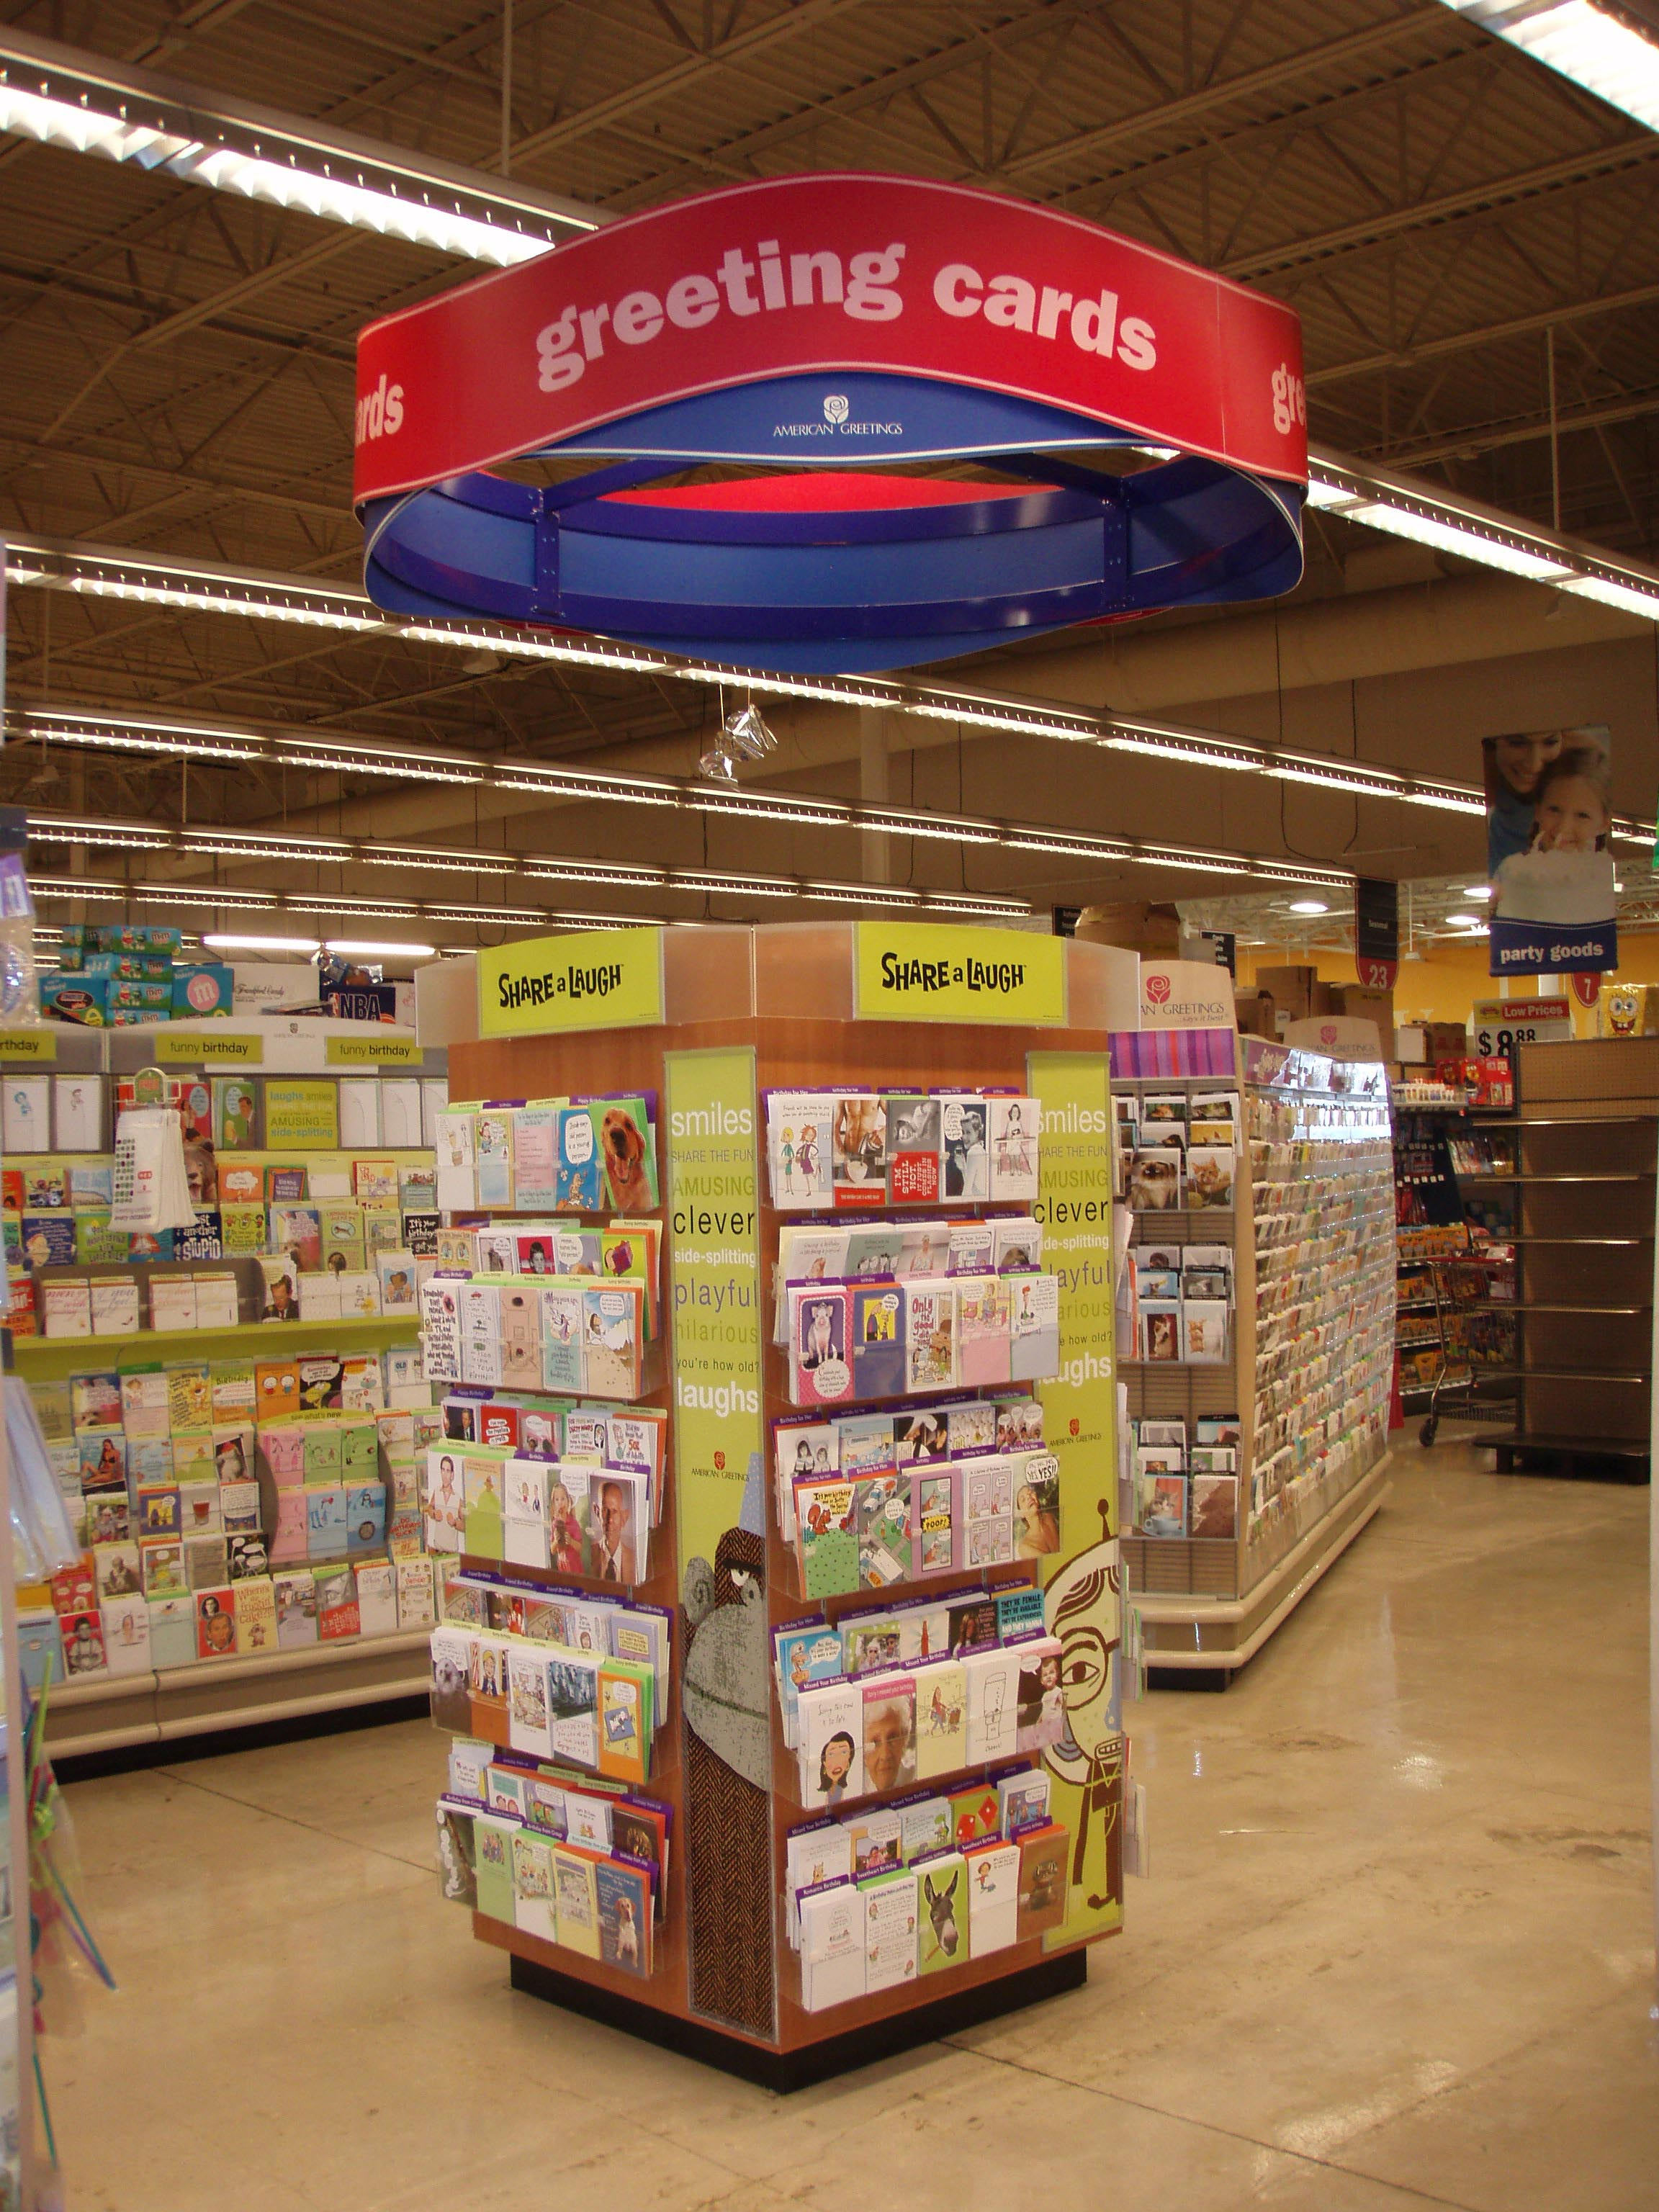 American greetings Hanging in store, Hanging store sign